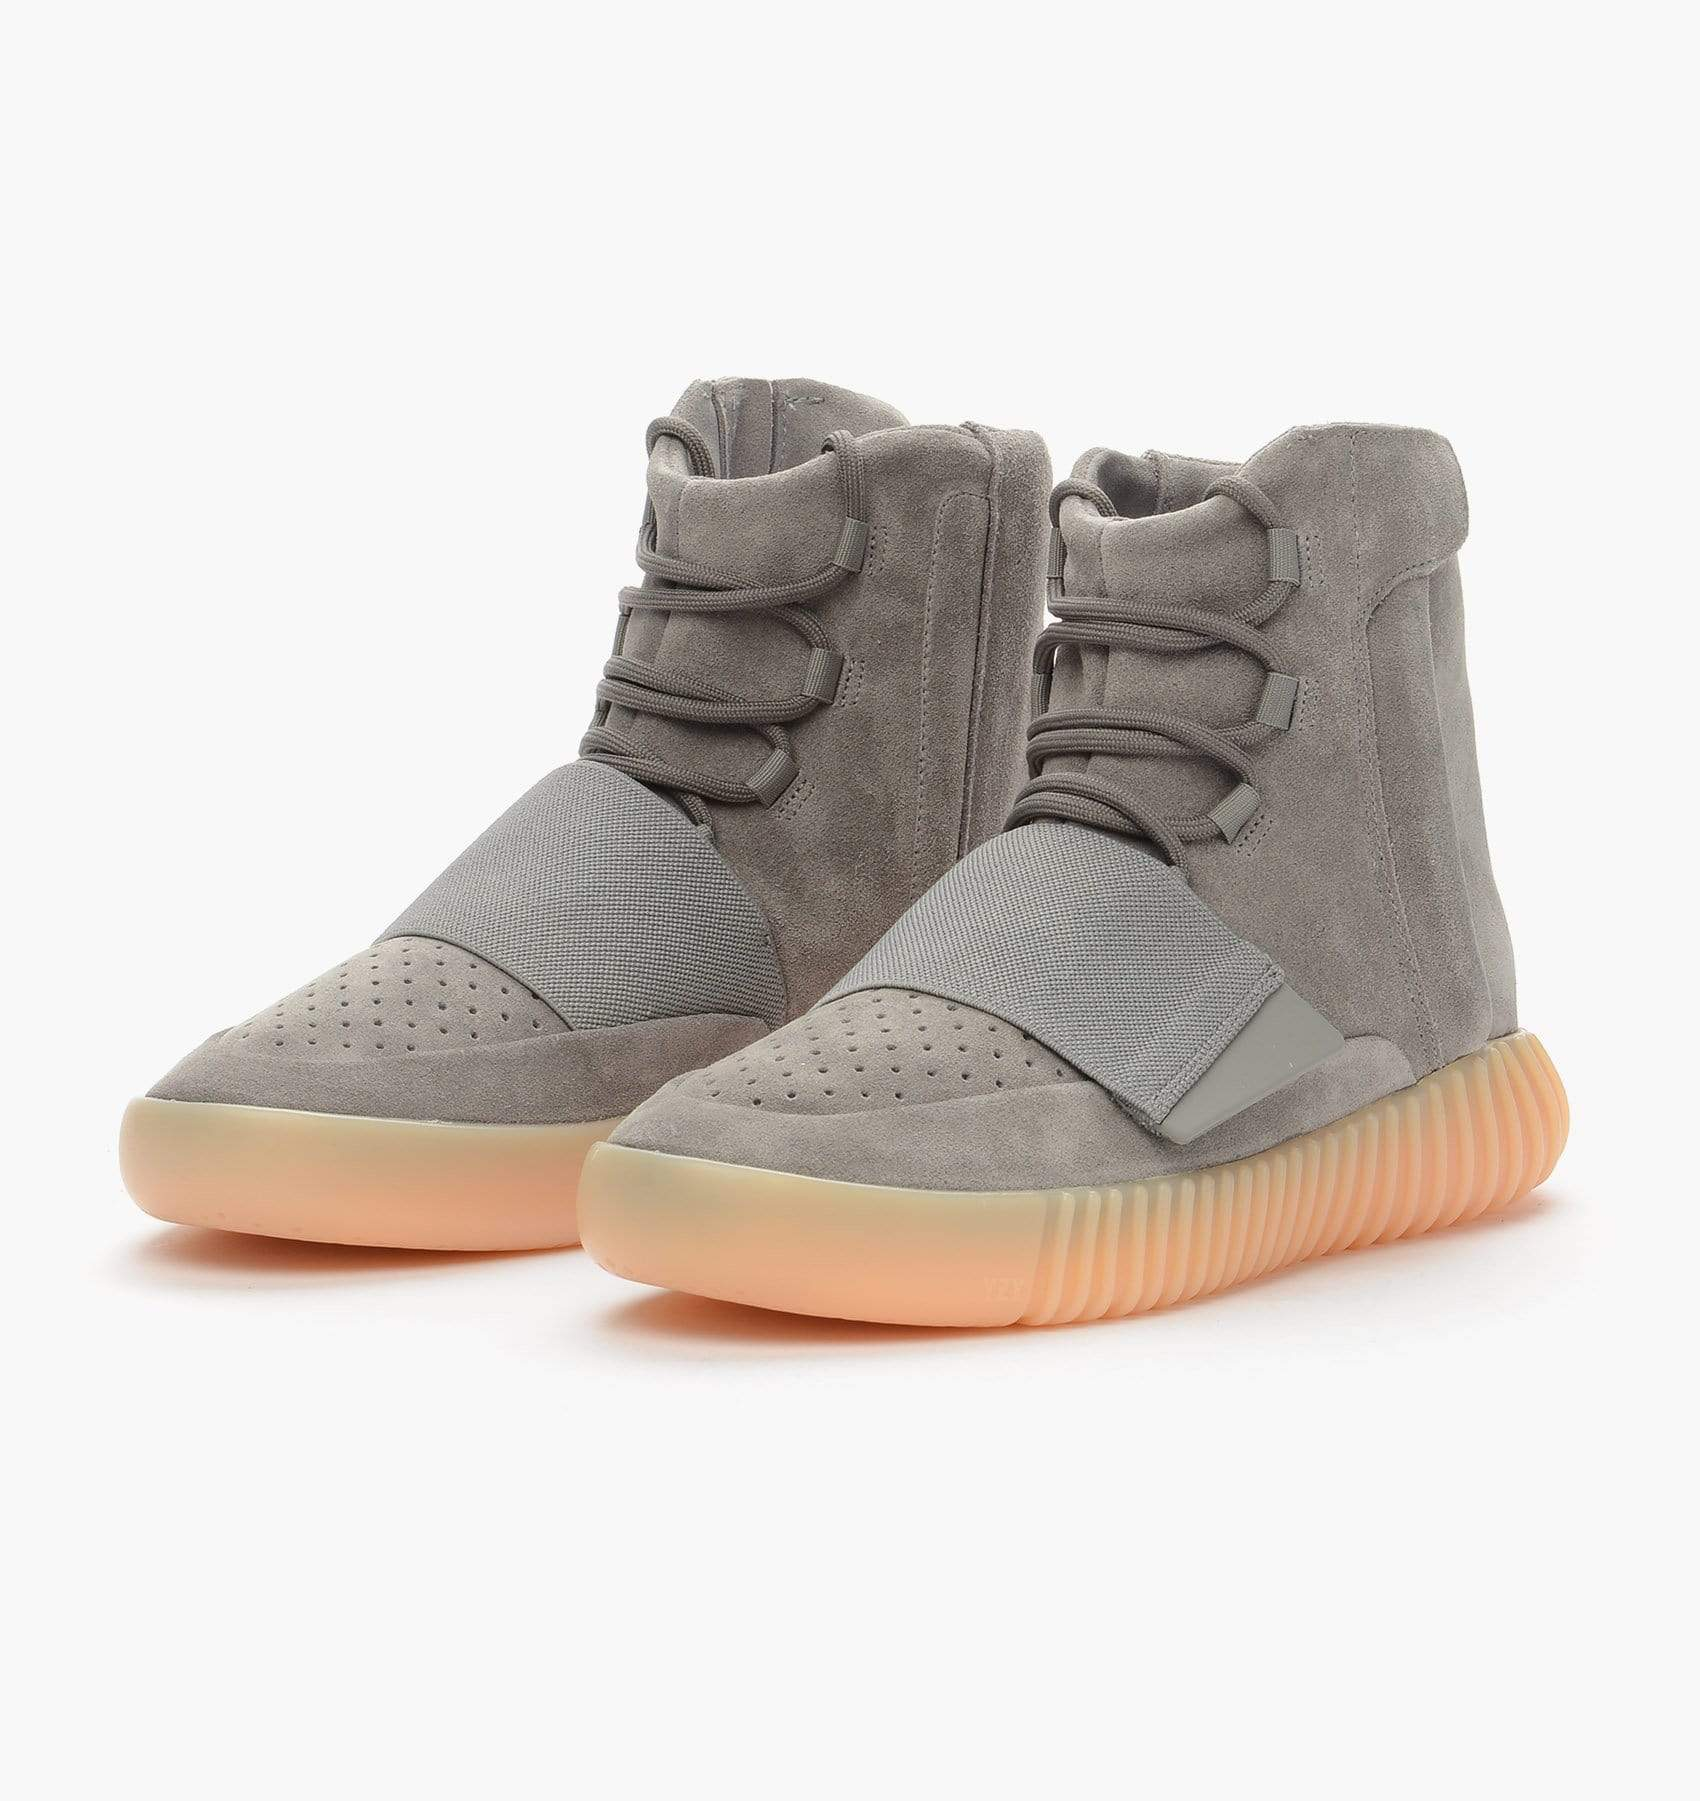 Adidas Originals Yeezy 750 Boost Light Grey-Gum - Kick Game